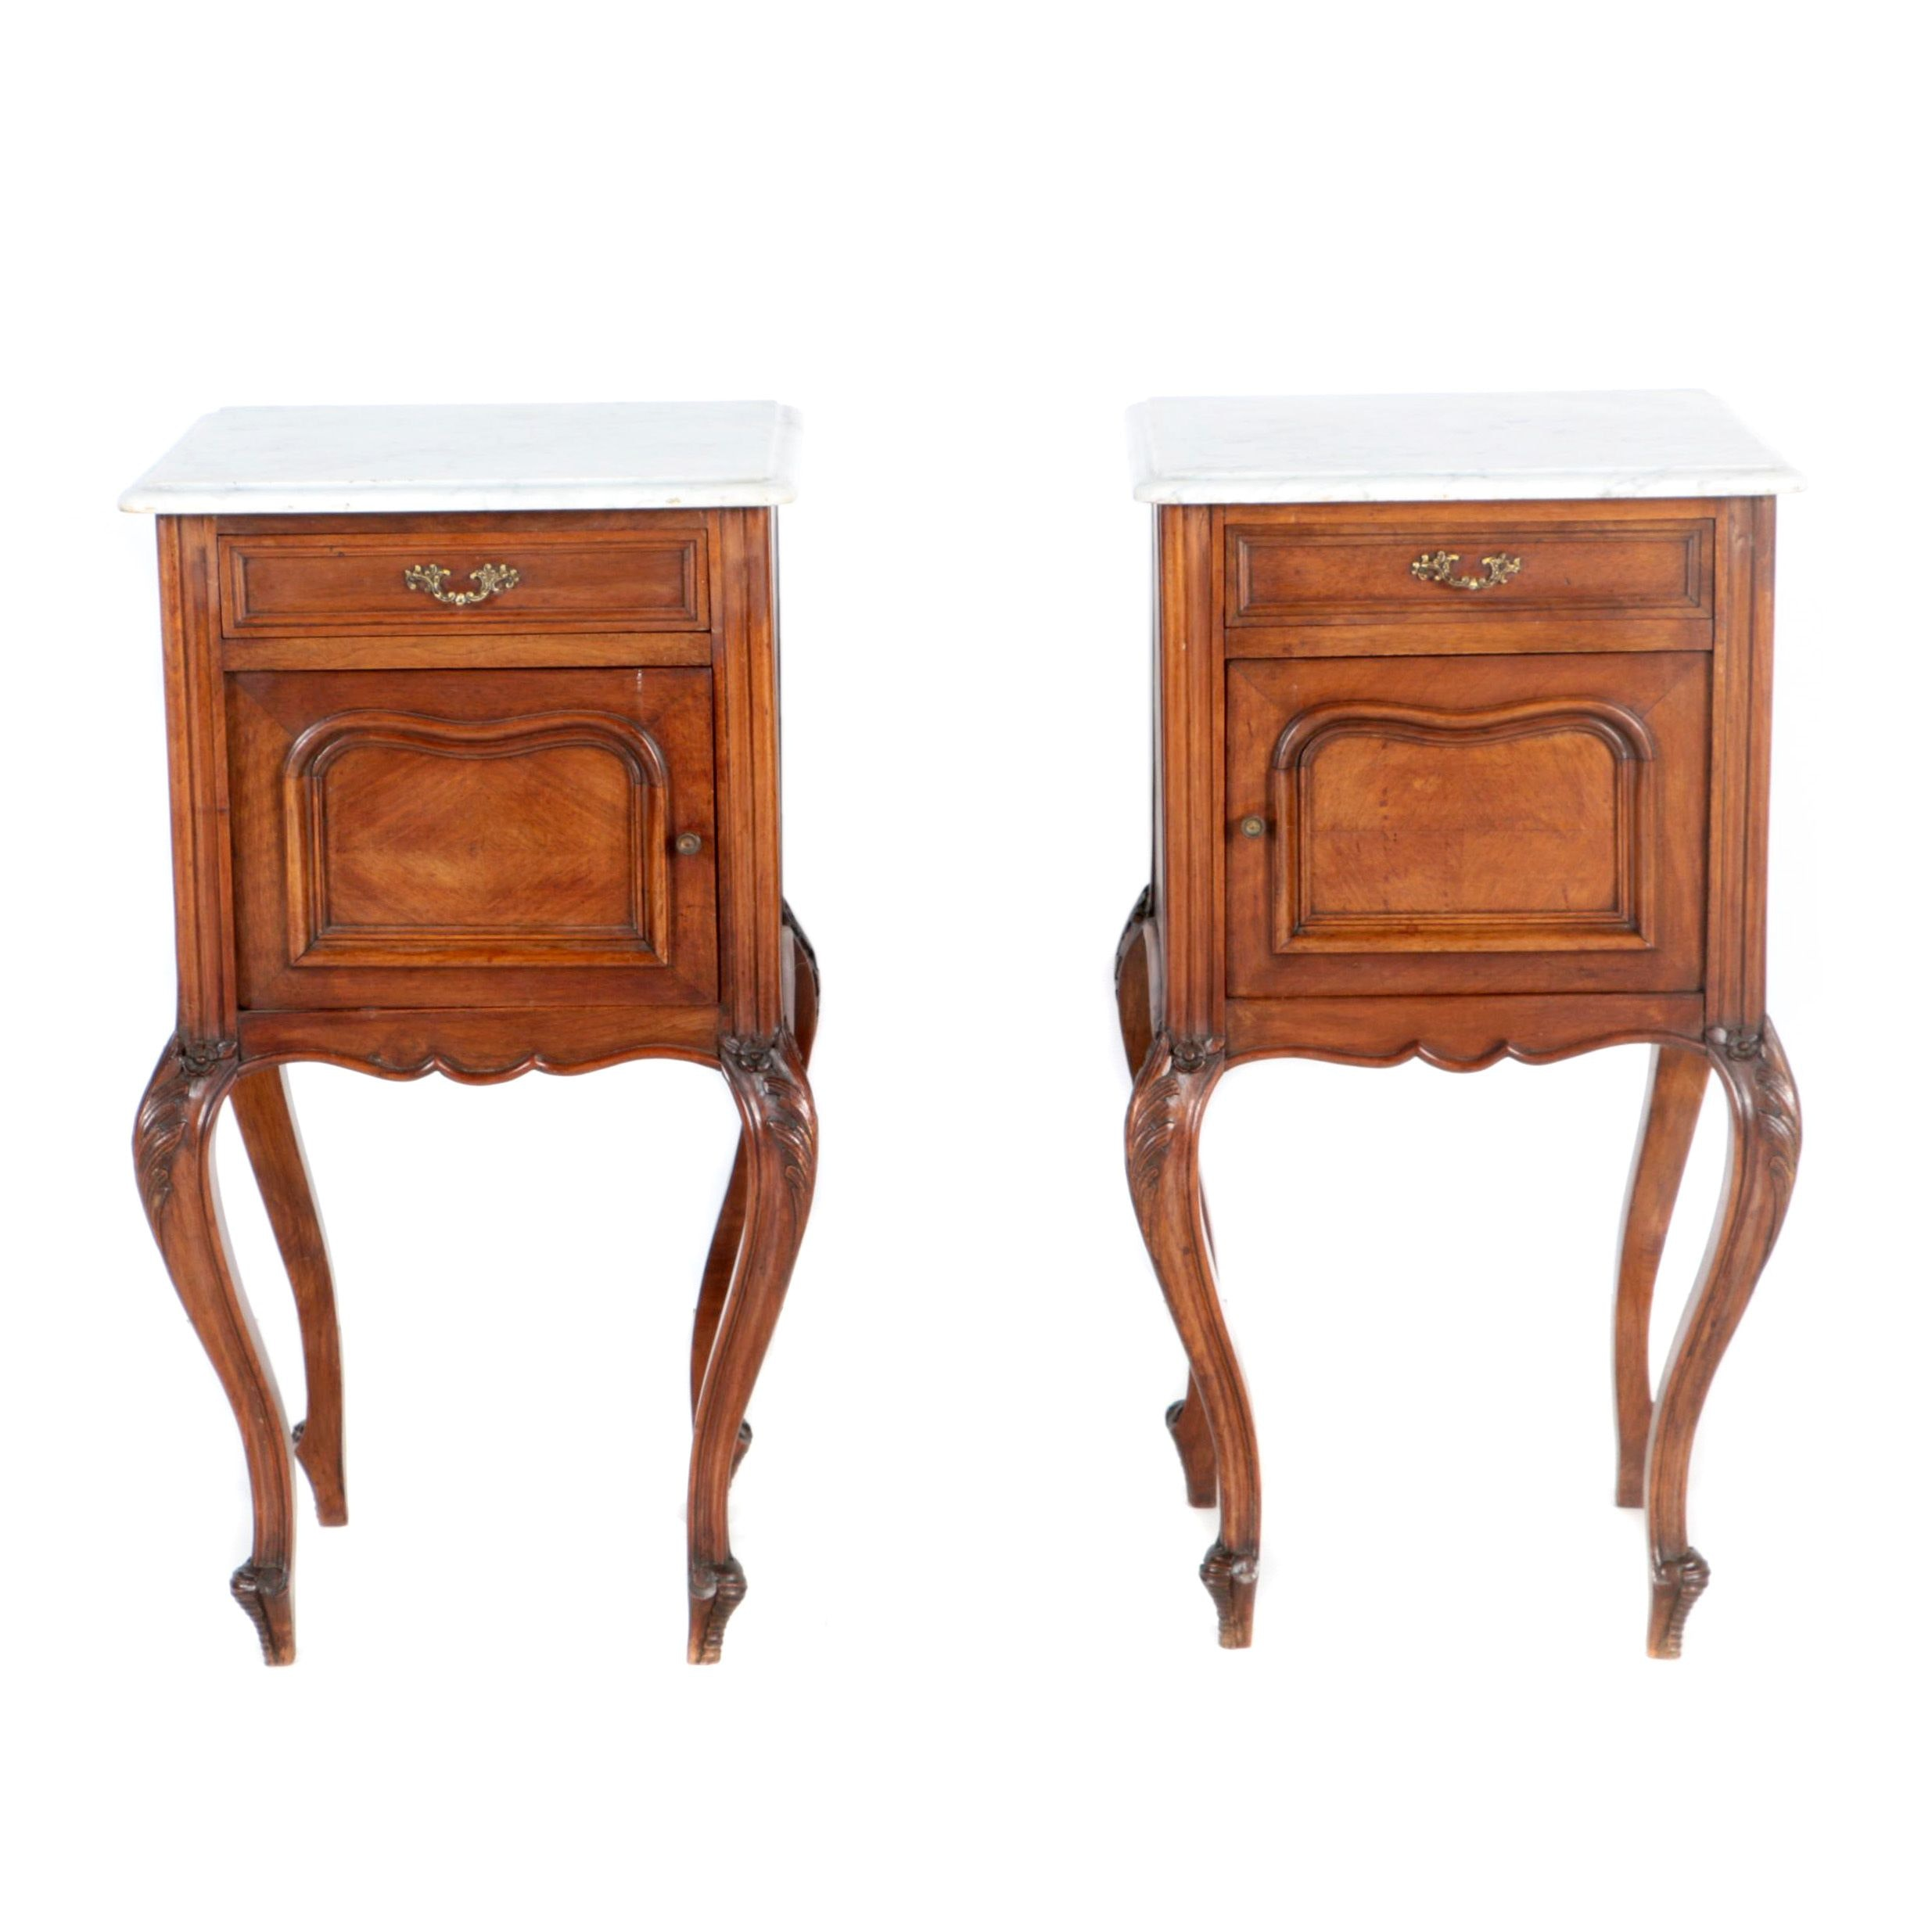 Pair of French Walnut Nightstands